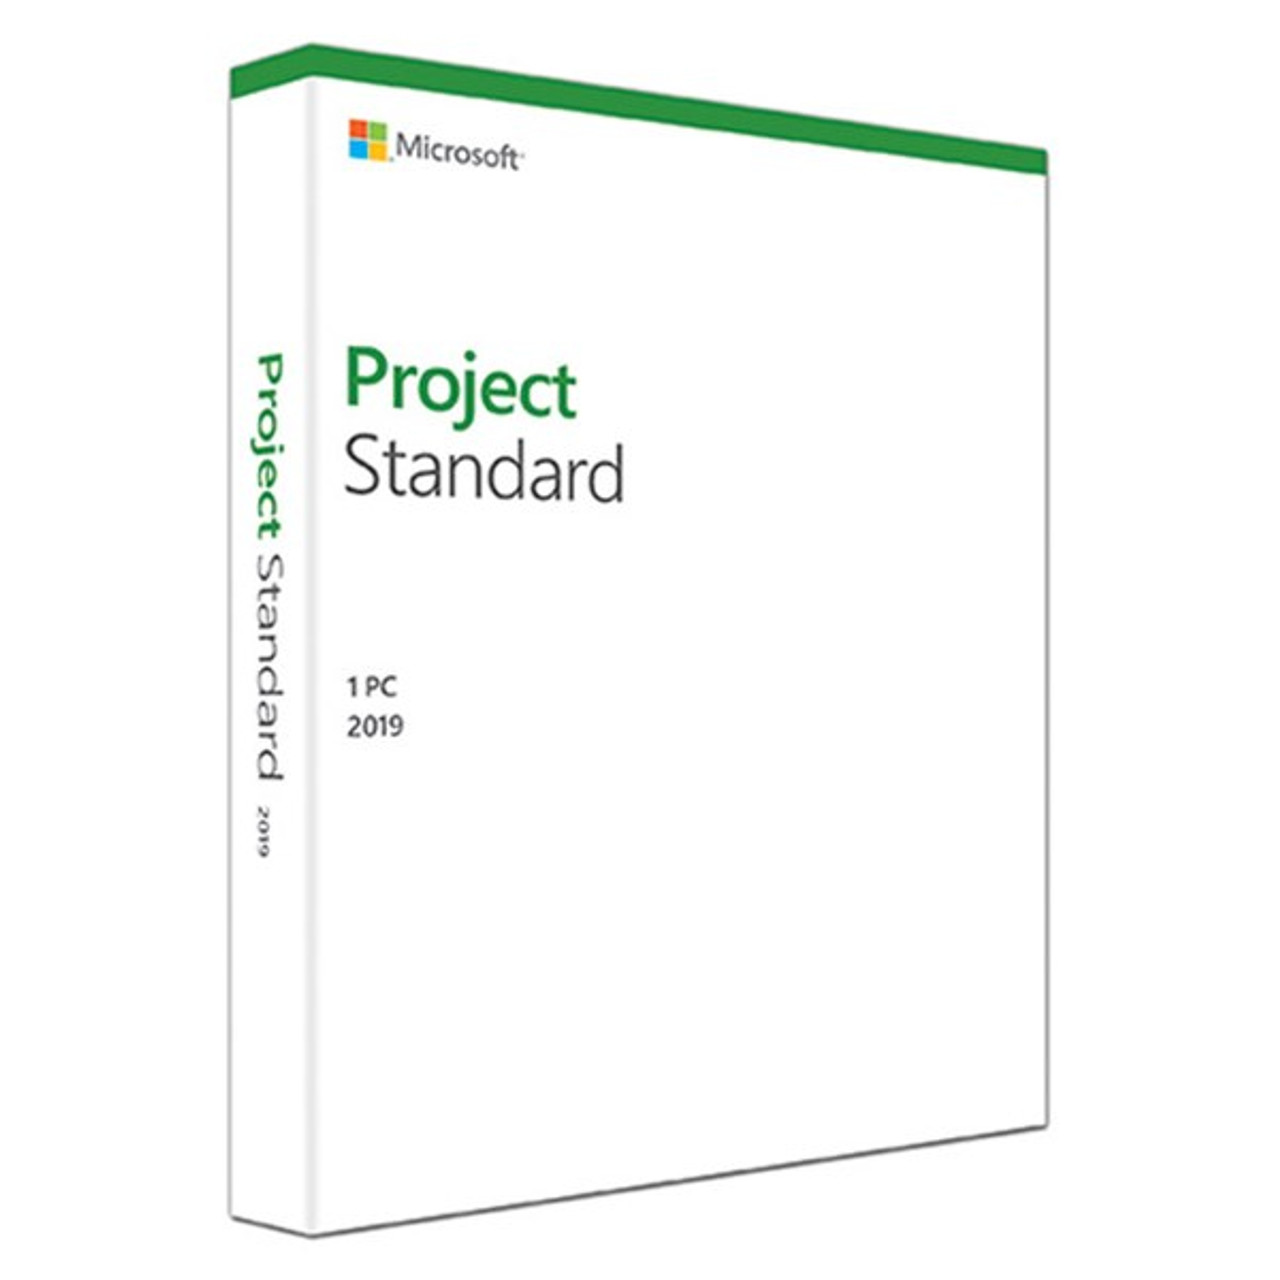 Image for Microsoft Project Standard 2019 - Digital Download CX Computer Superstore